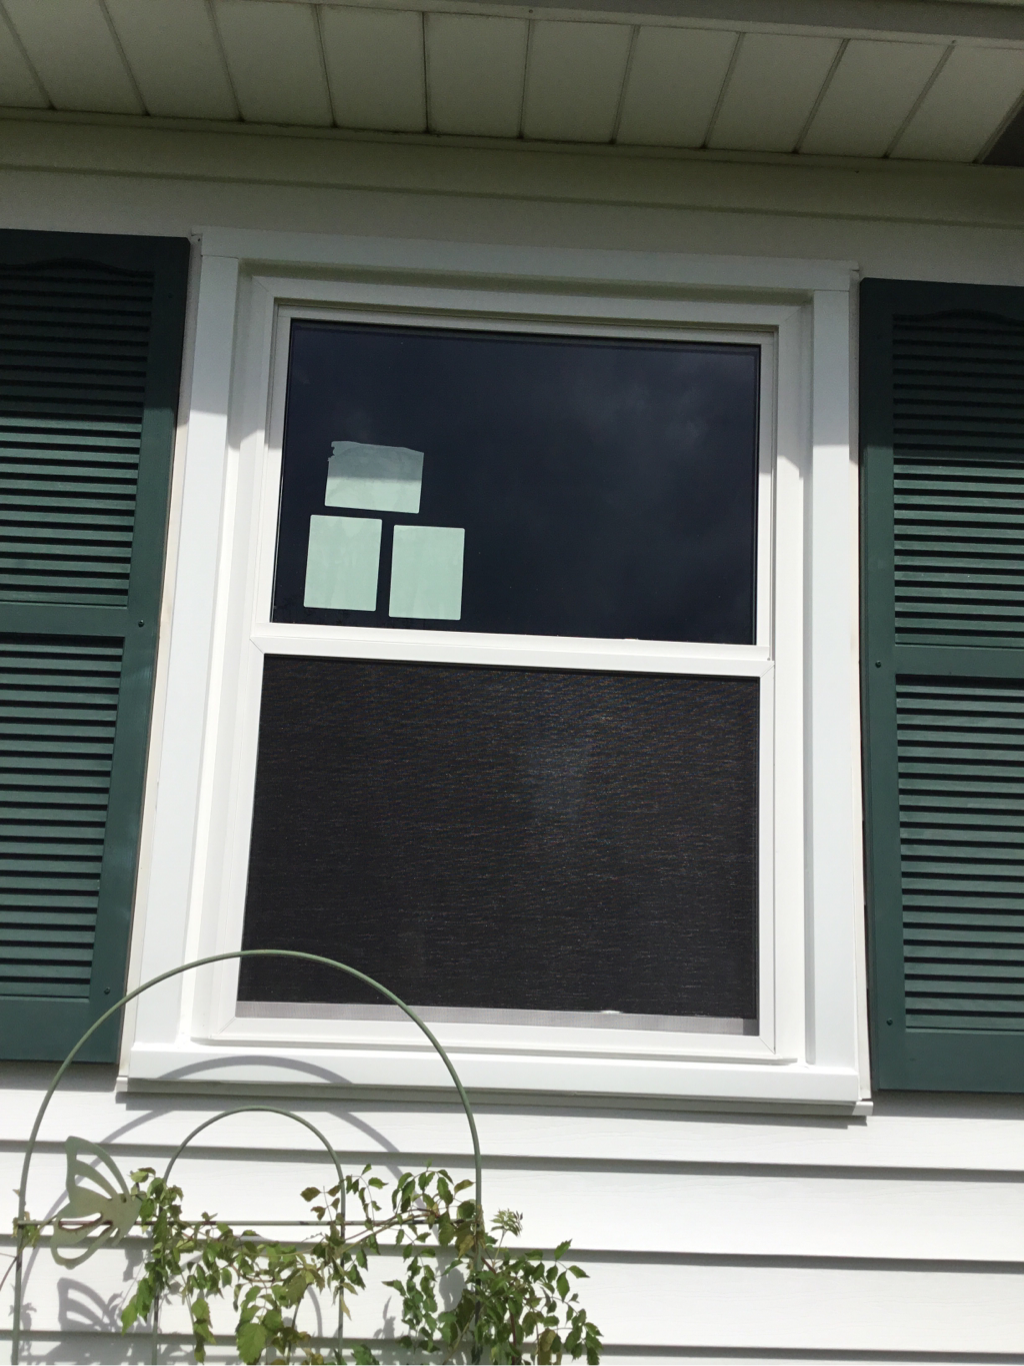 alside double hung window after